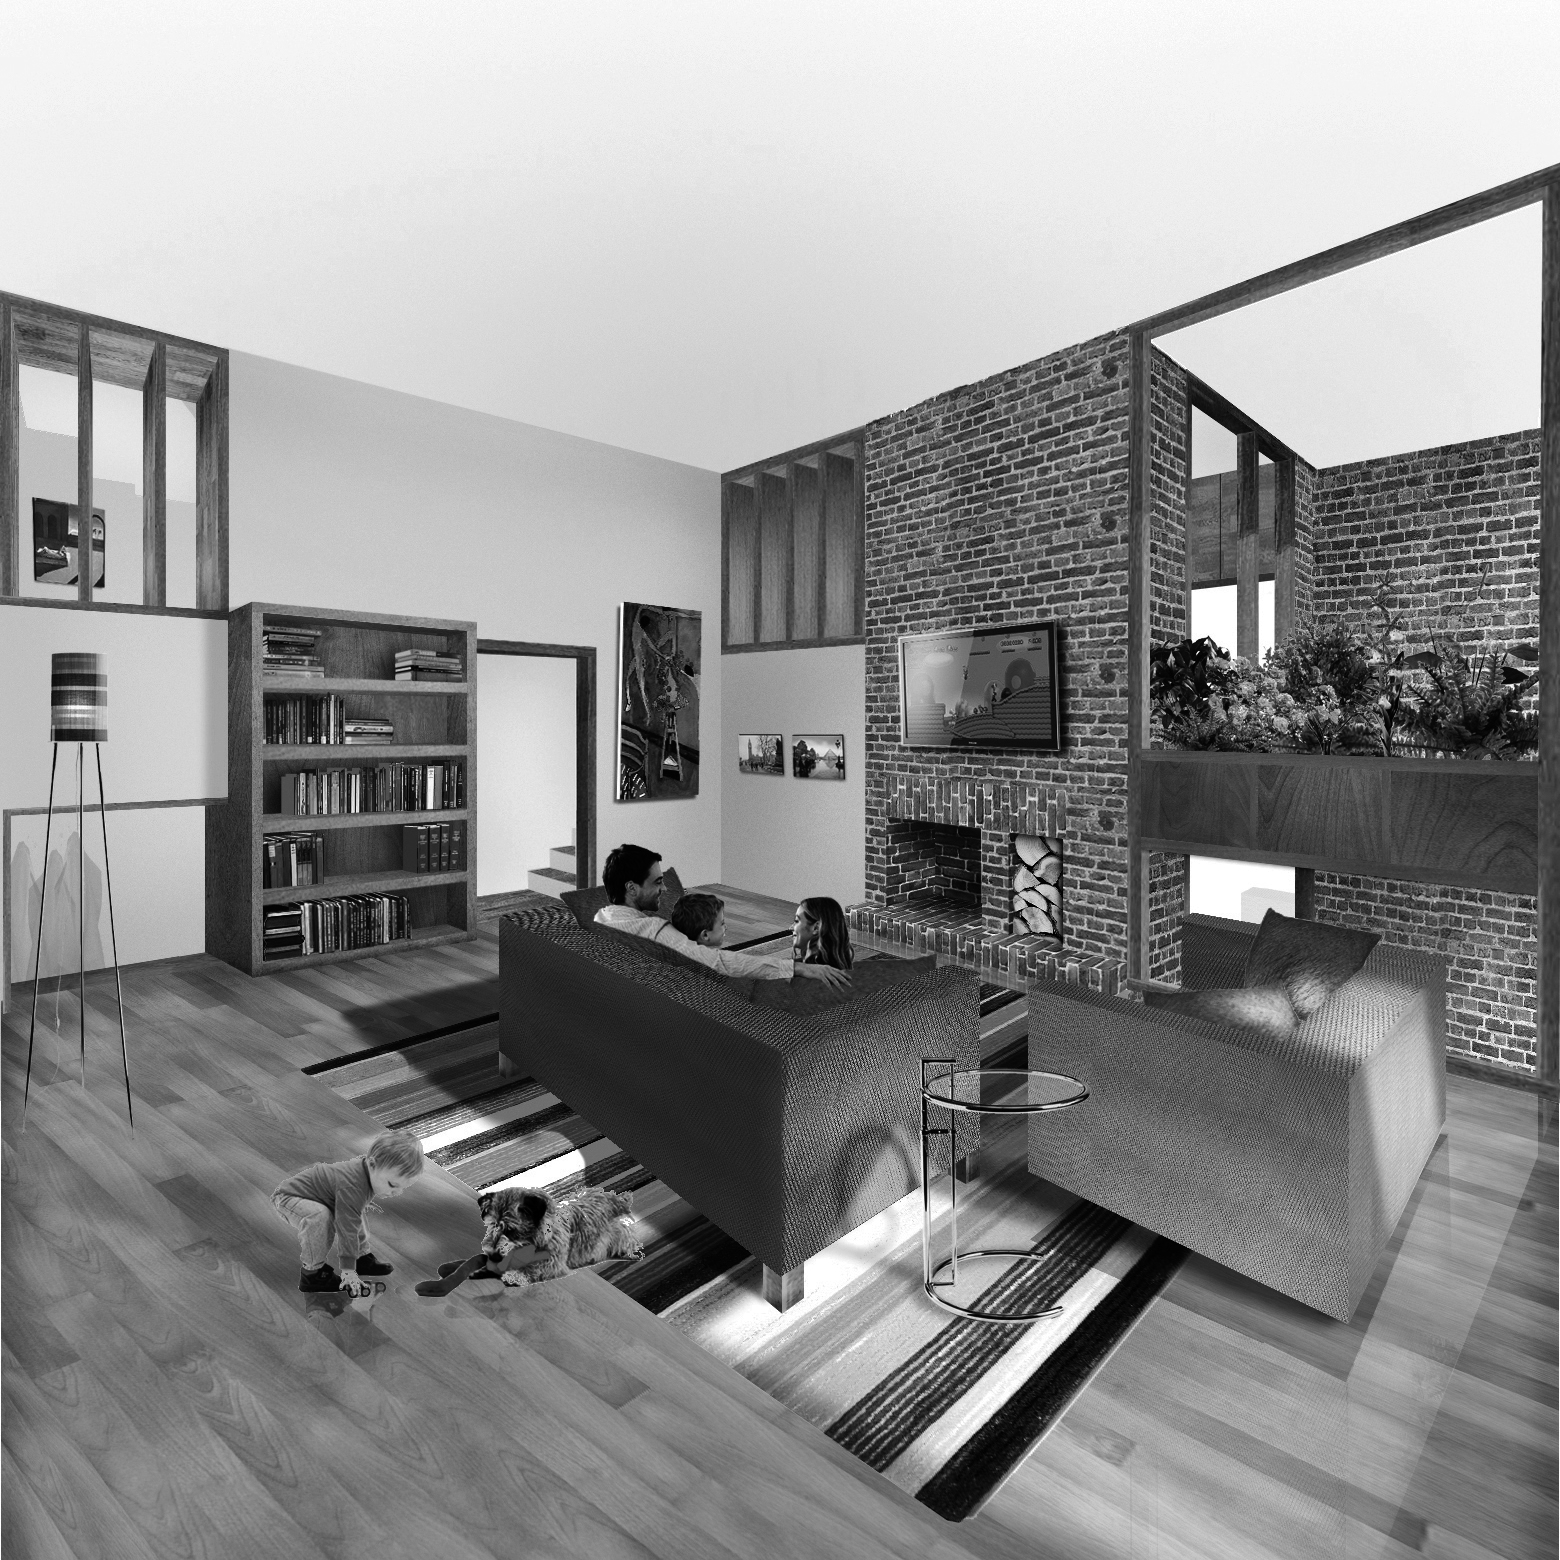 The living room is almost four meters high [one and a half stories] and can interact with the study, kitchen, entrance hallway and both balconies. It contains an open fire hearth.